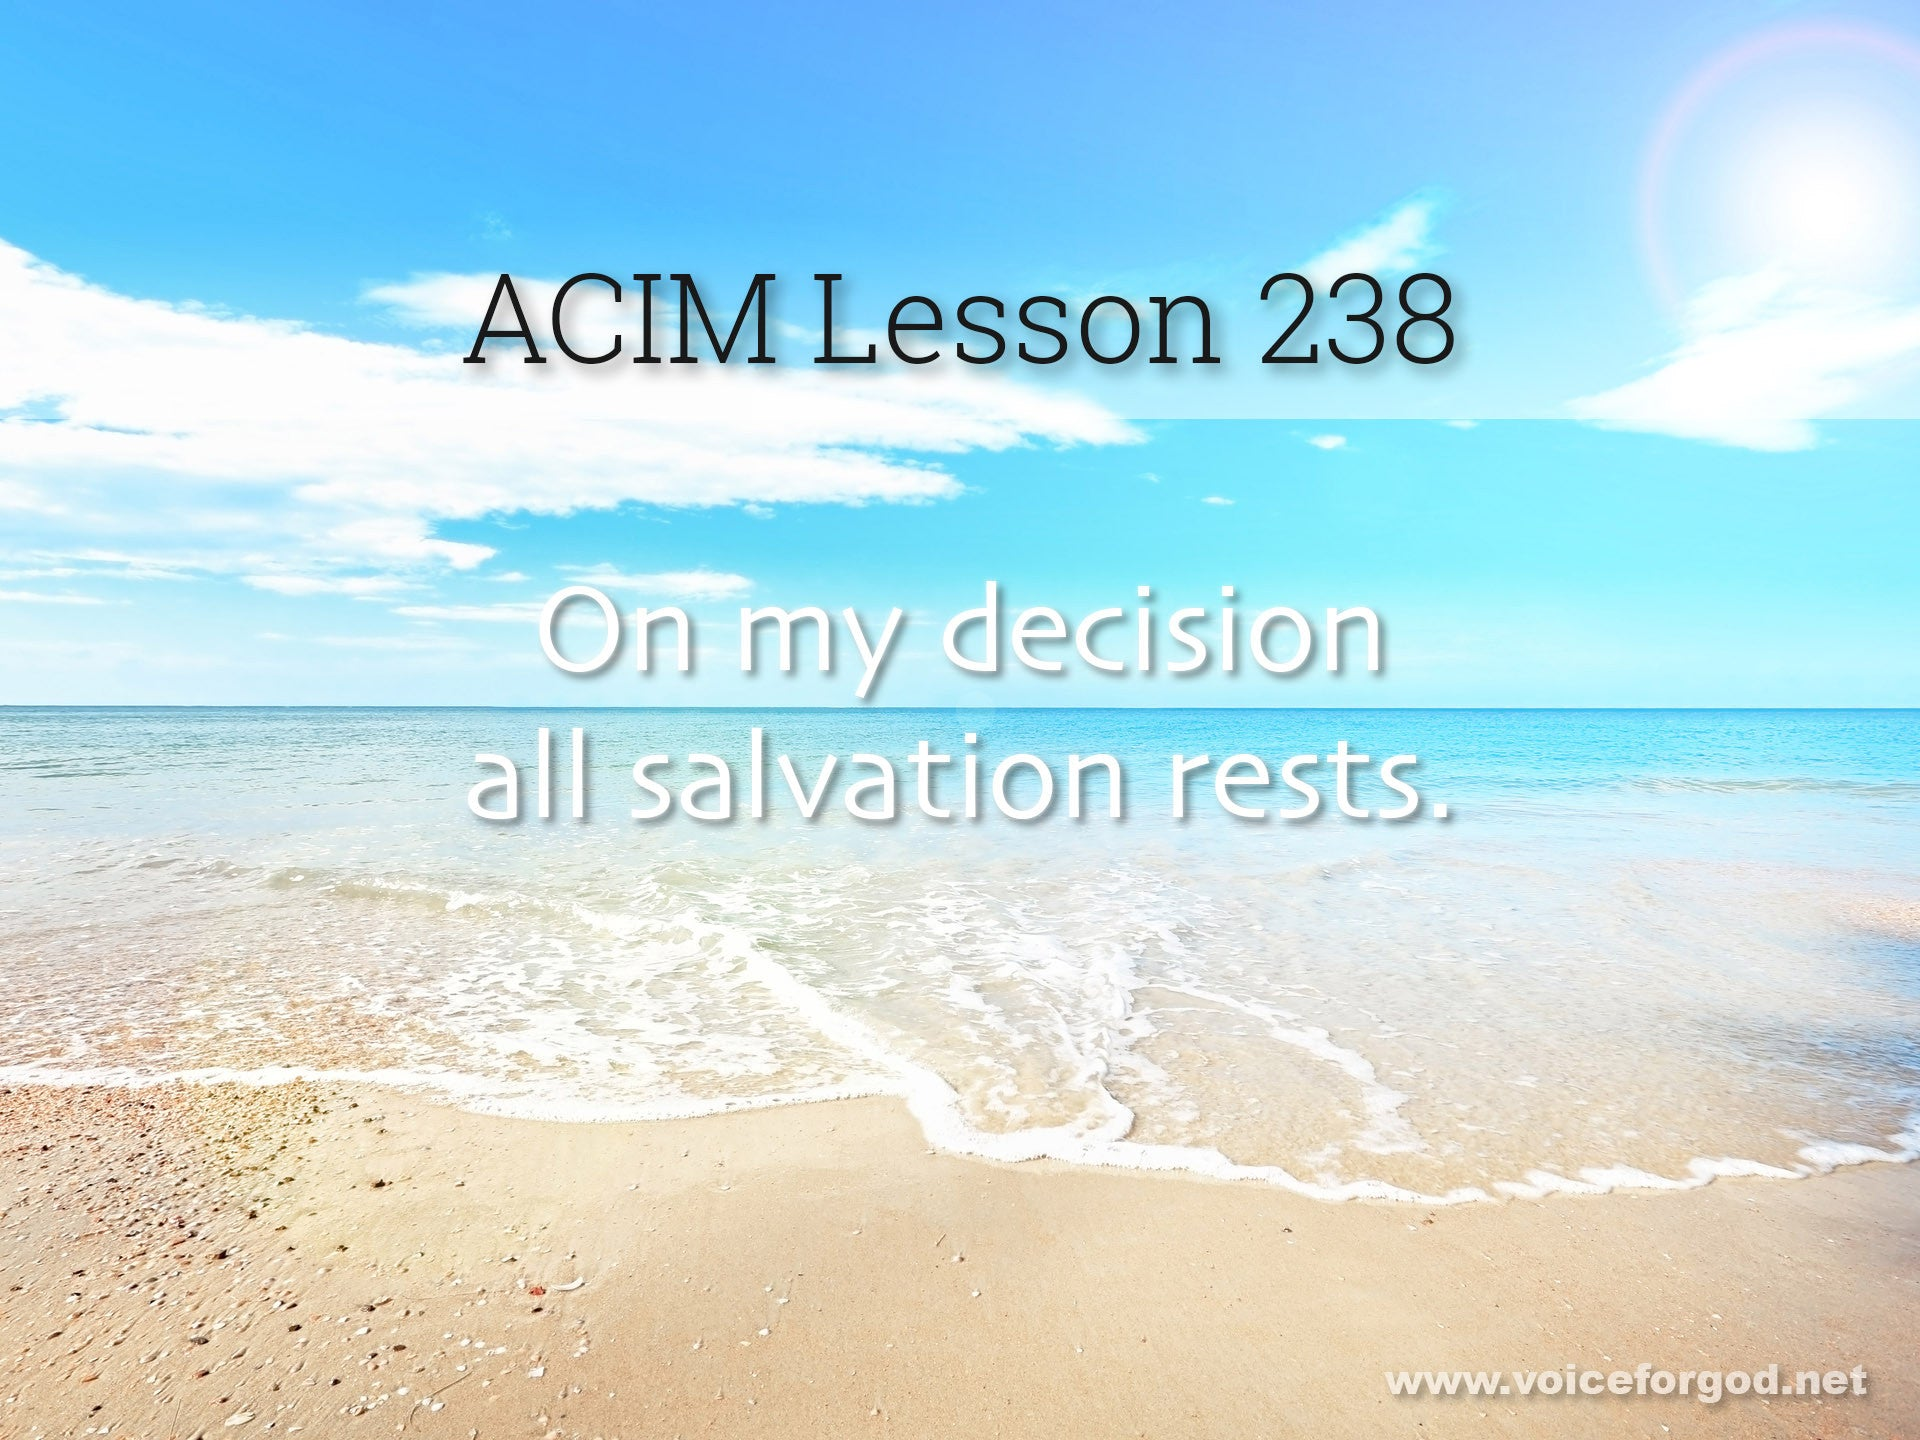 ACIM Lesson 238 - A Course in Miracles Workbook Lesson 238